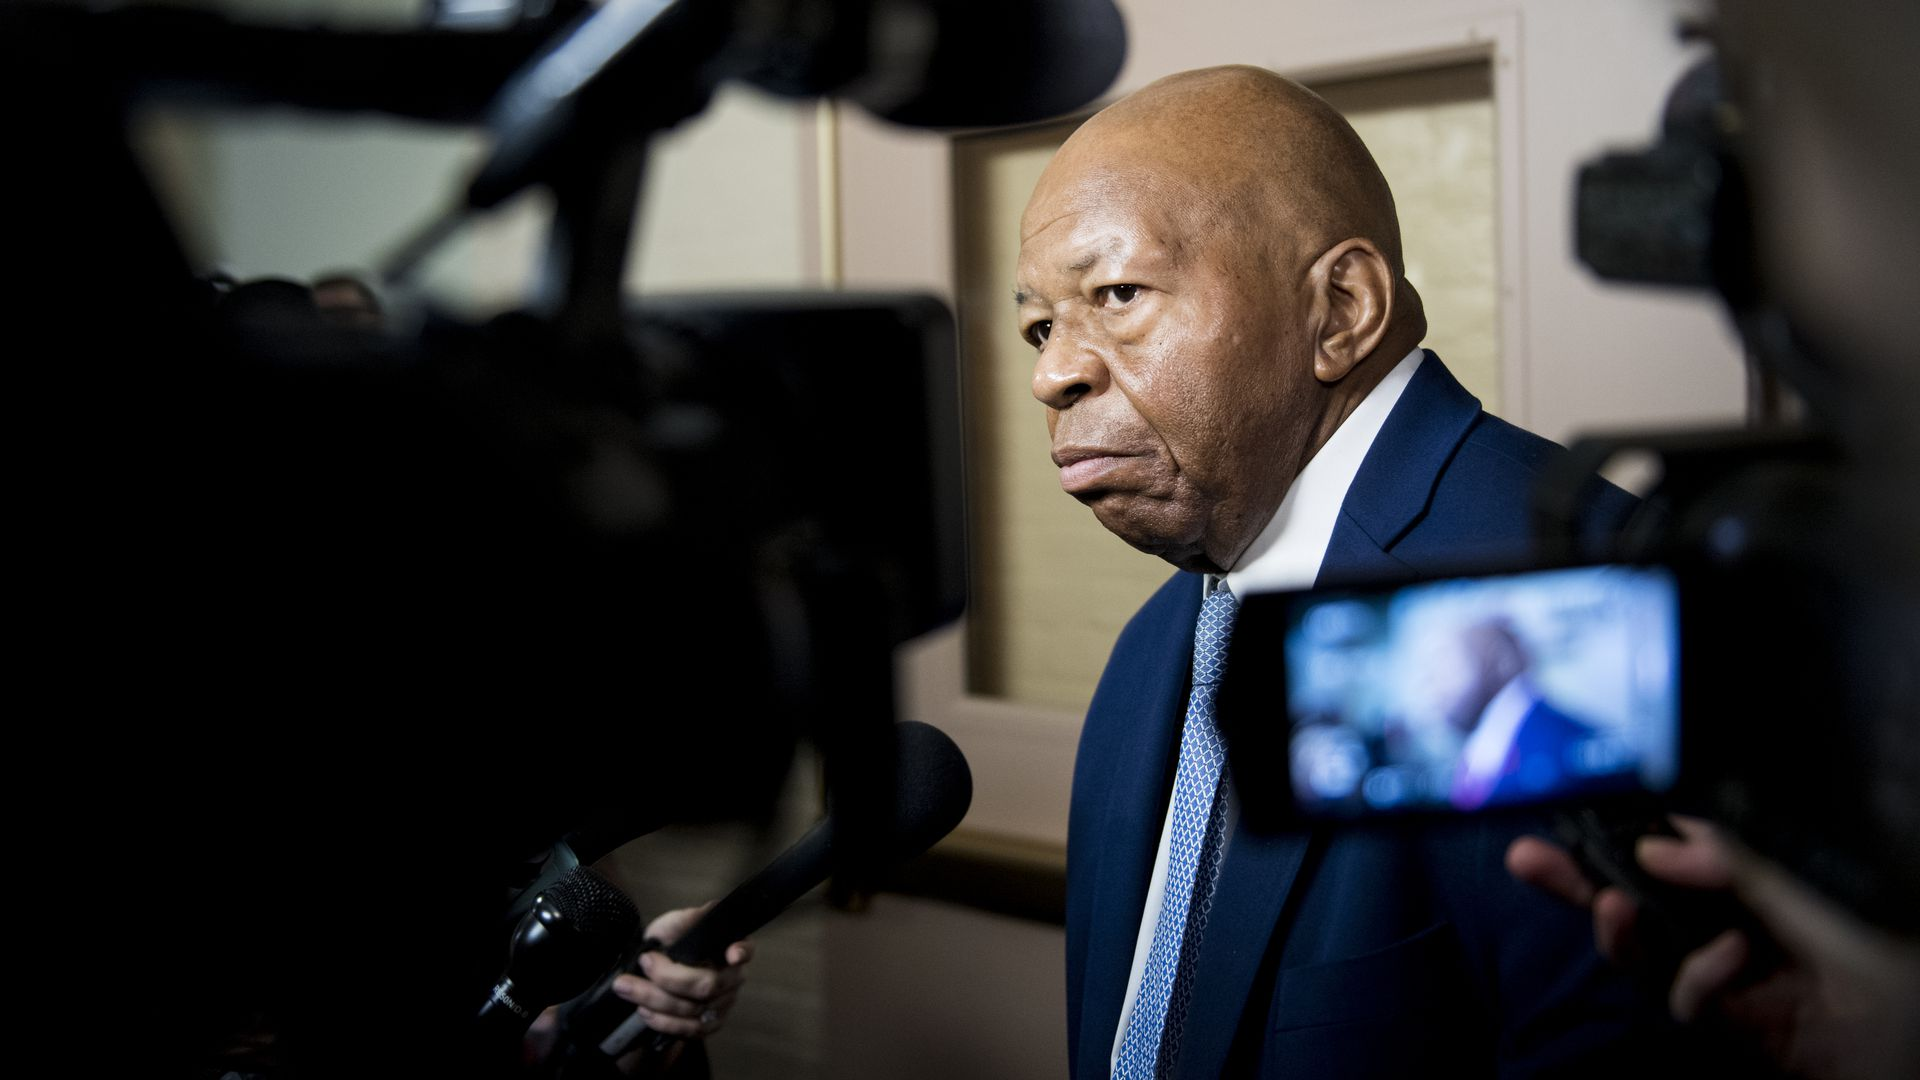 Rep. Elijah Cummings, D-Md., leaves the House Democrats' caucus meeting in the Capitol